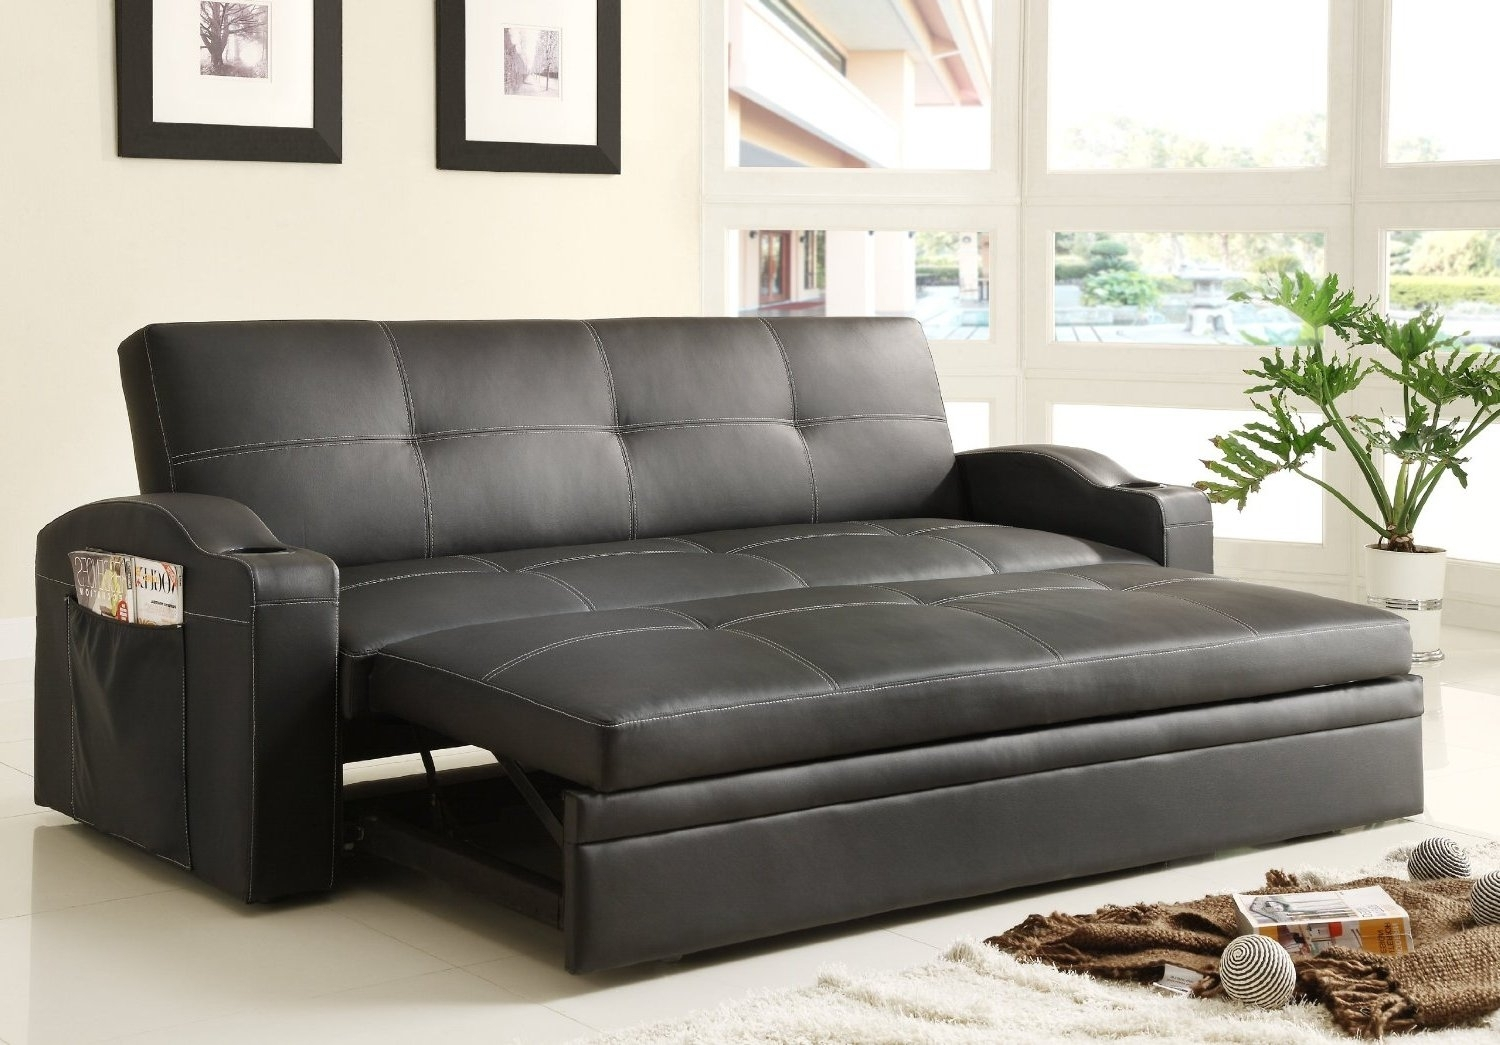 Adjustable Queen Size Sofa Bed Black Color Upholstered In Black Bi Intended For Adjustable Sectional Sofas With Queen Bed (Image 1 of 10)